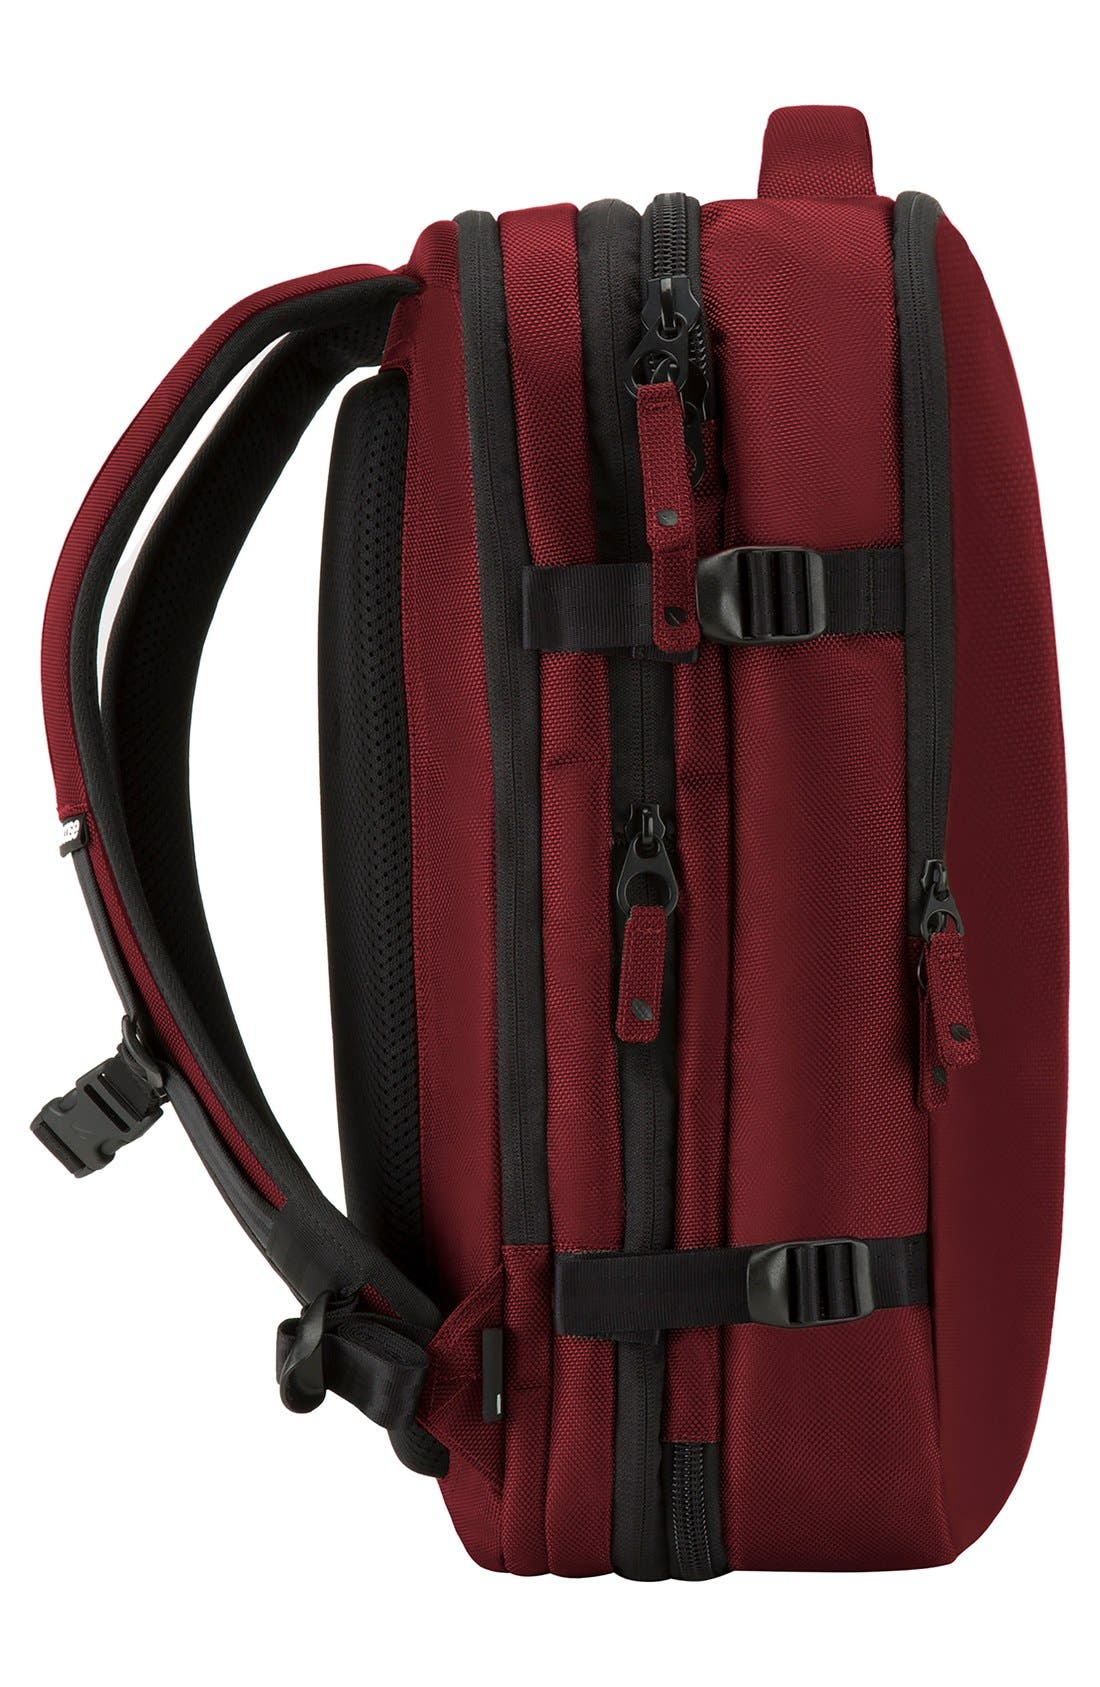 VIA Backpack,                             Alternate thumbnail 3, color,                             Deep Red